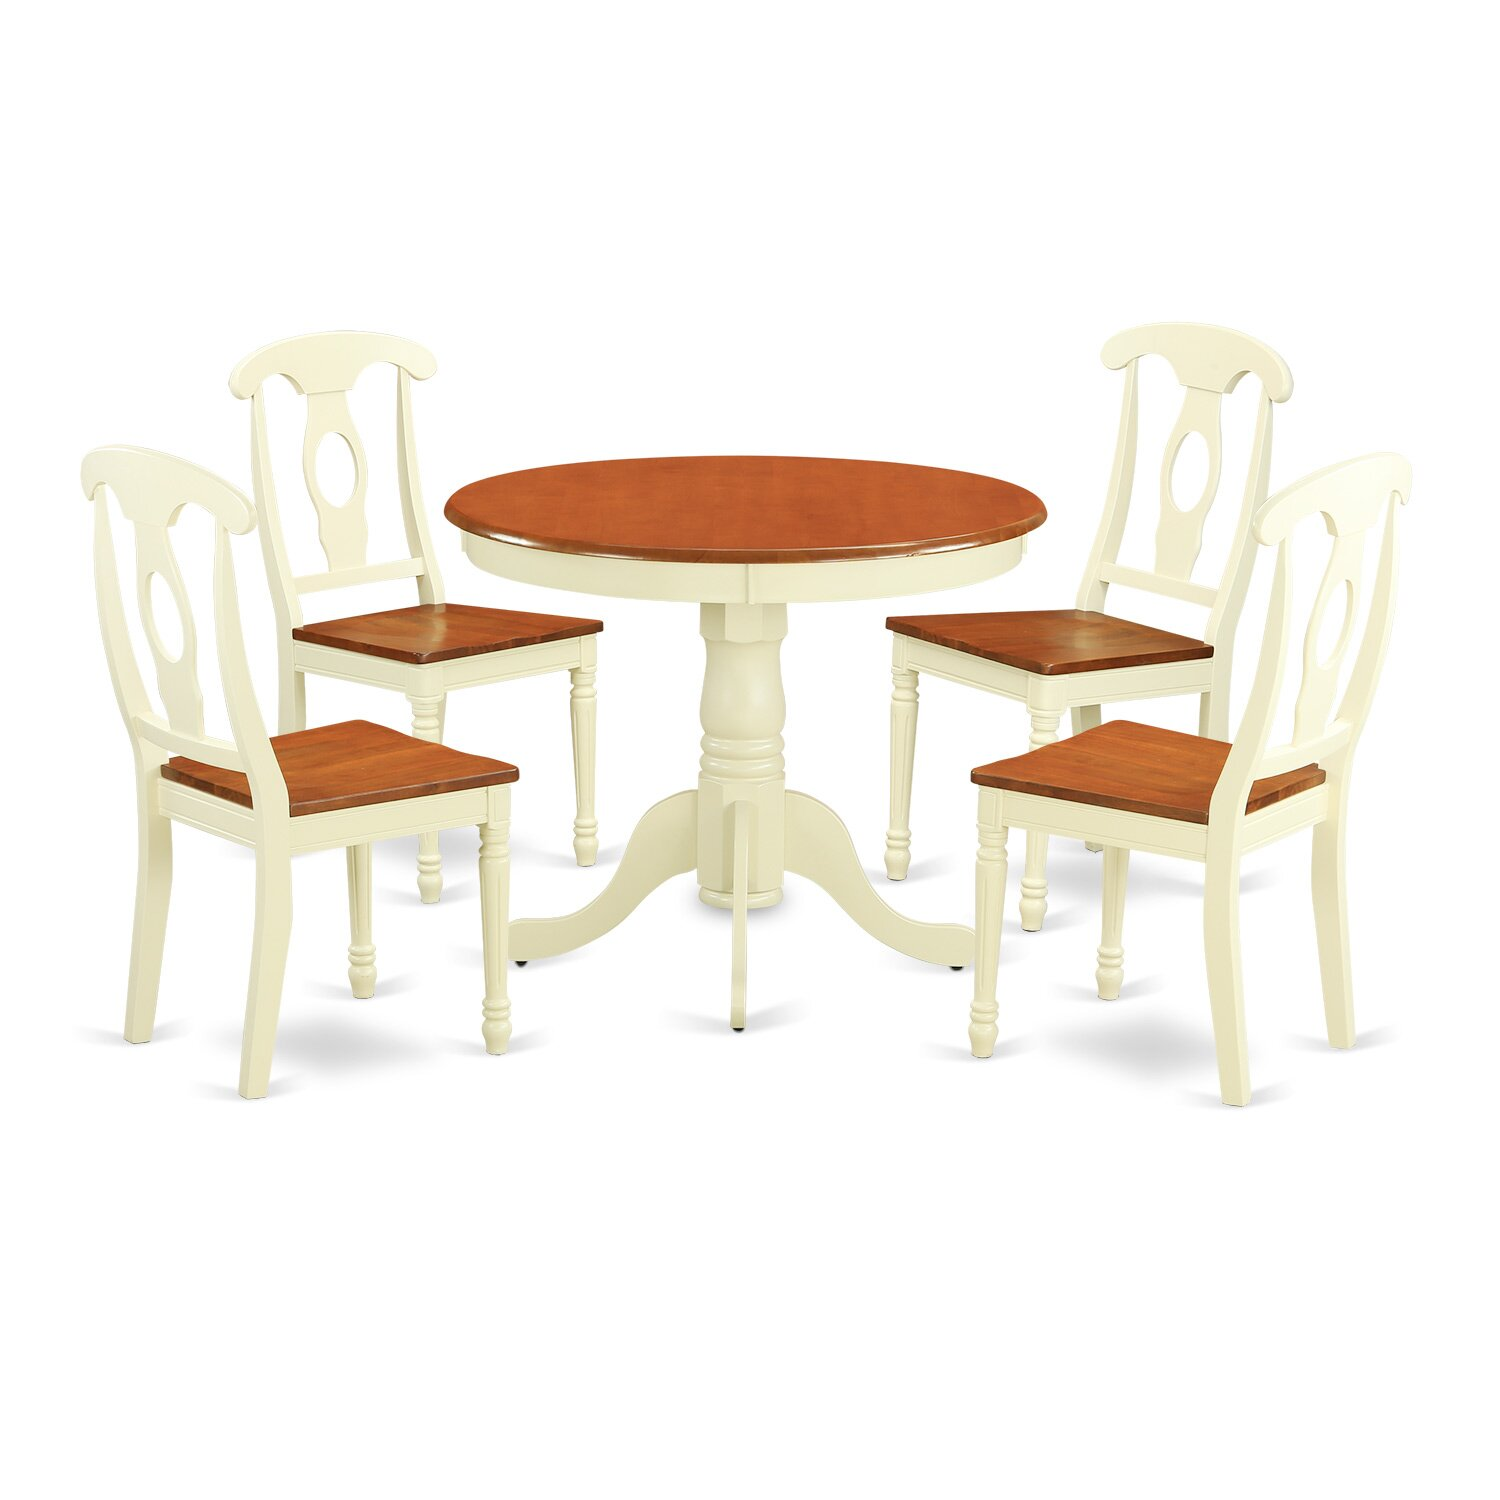 East west 5 piece dining set wayfair for Kitchen table and chairs